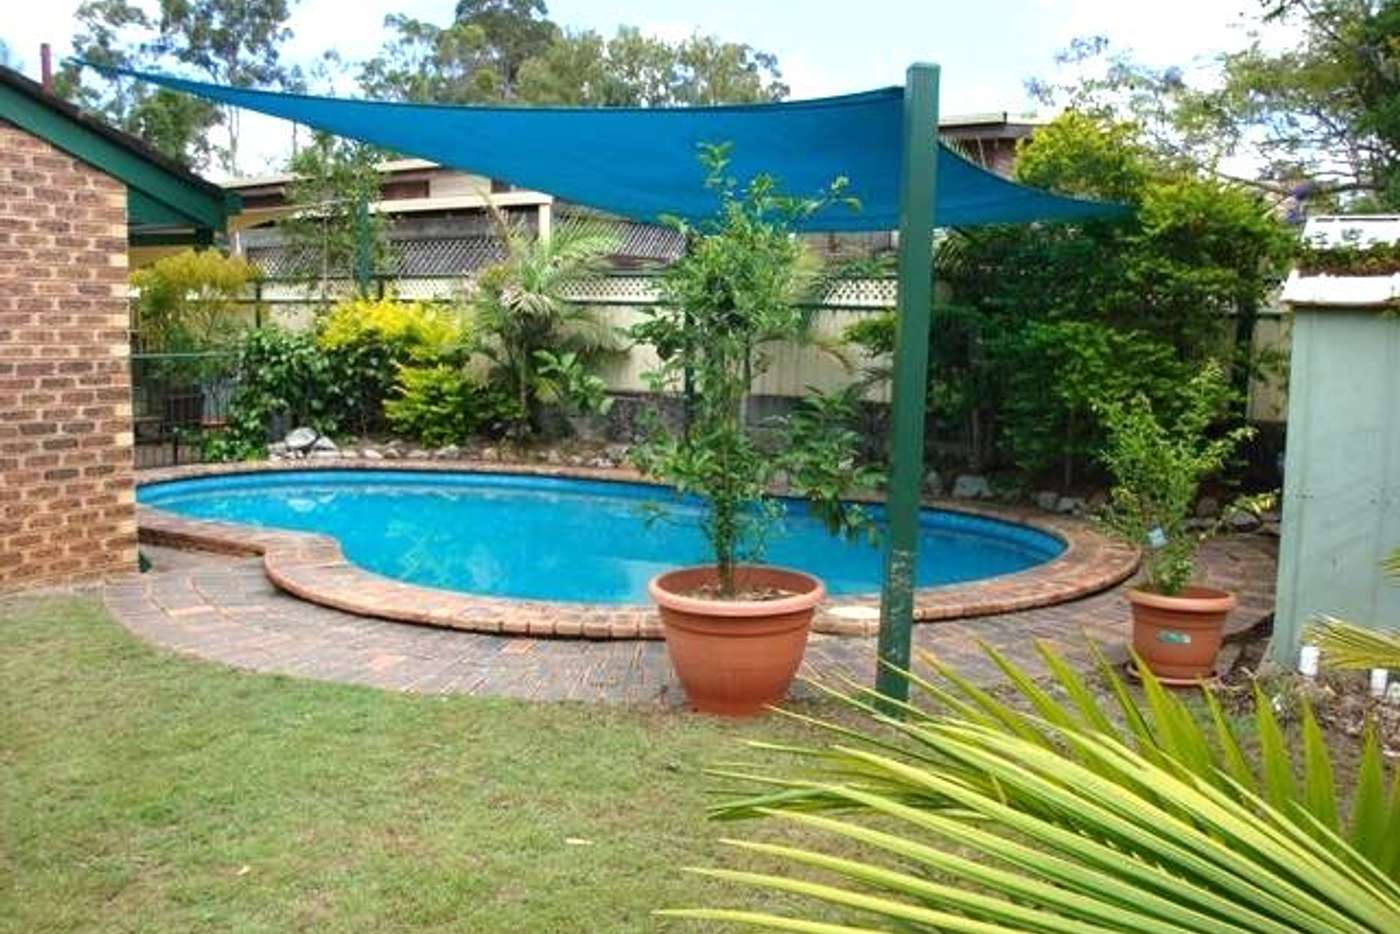 Main view of Homely house listing, 1 Duncannon Street, Durack QLD 4077